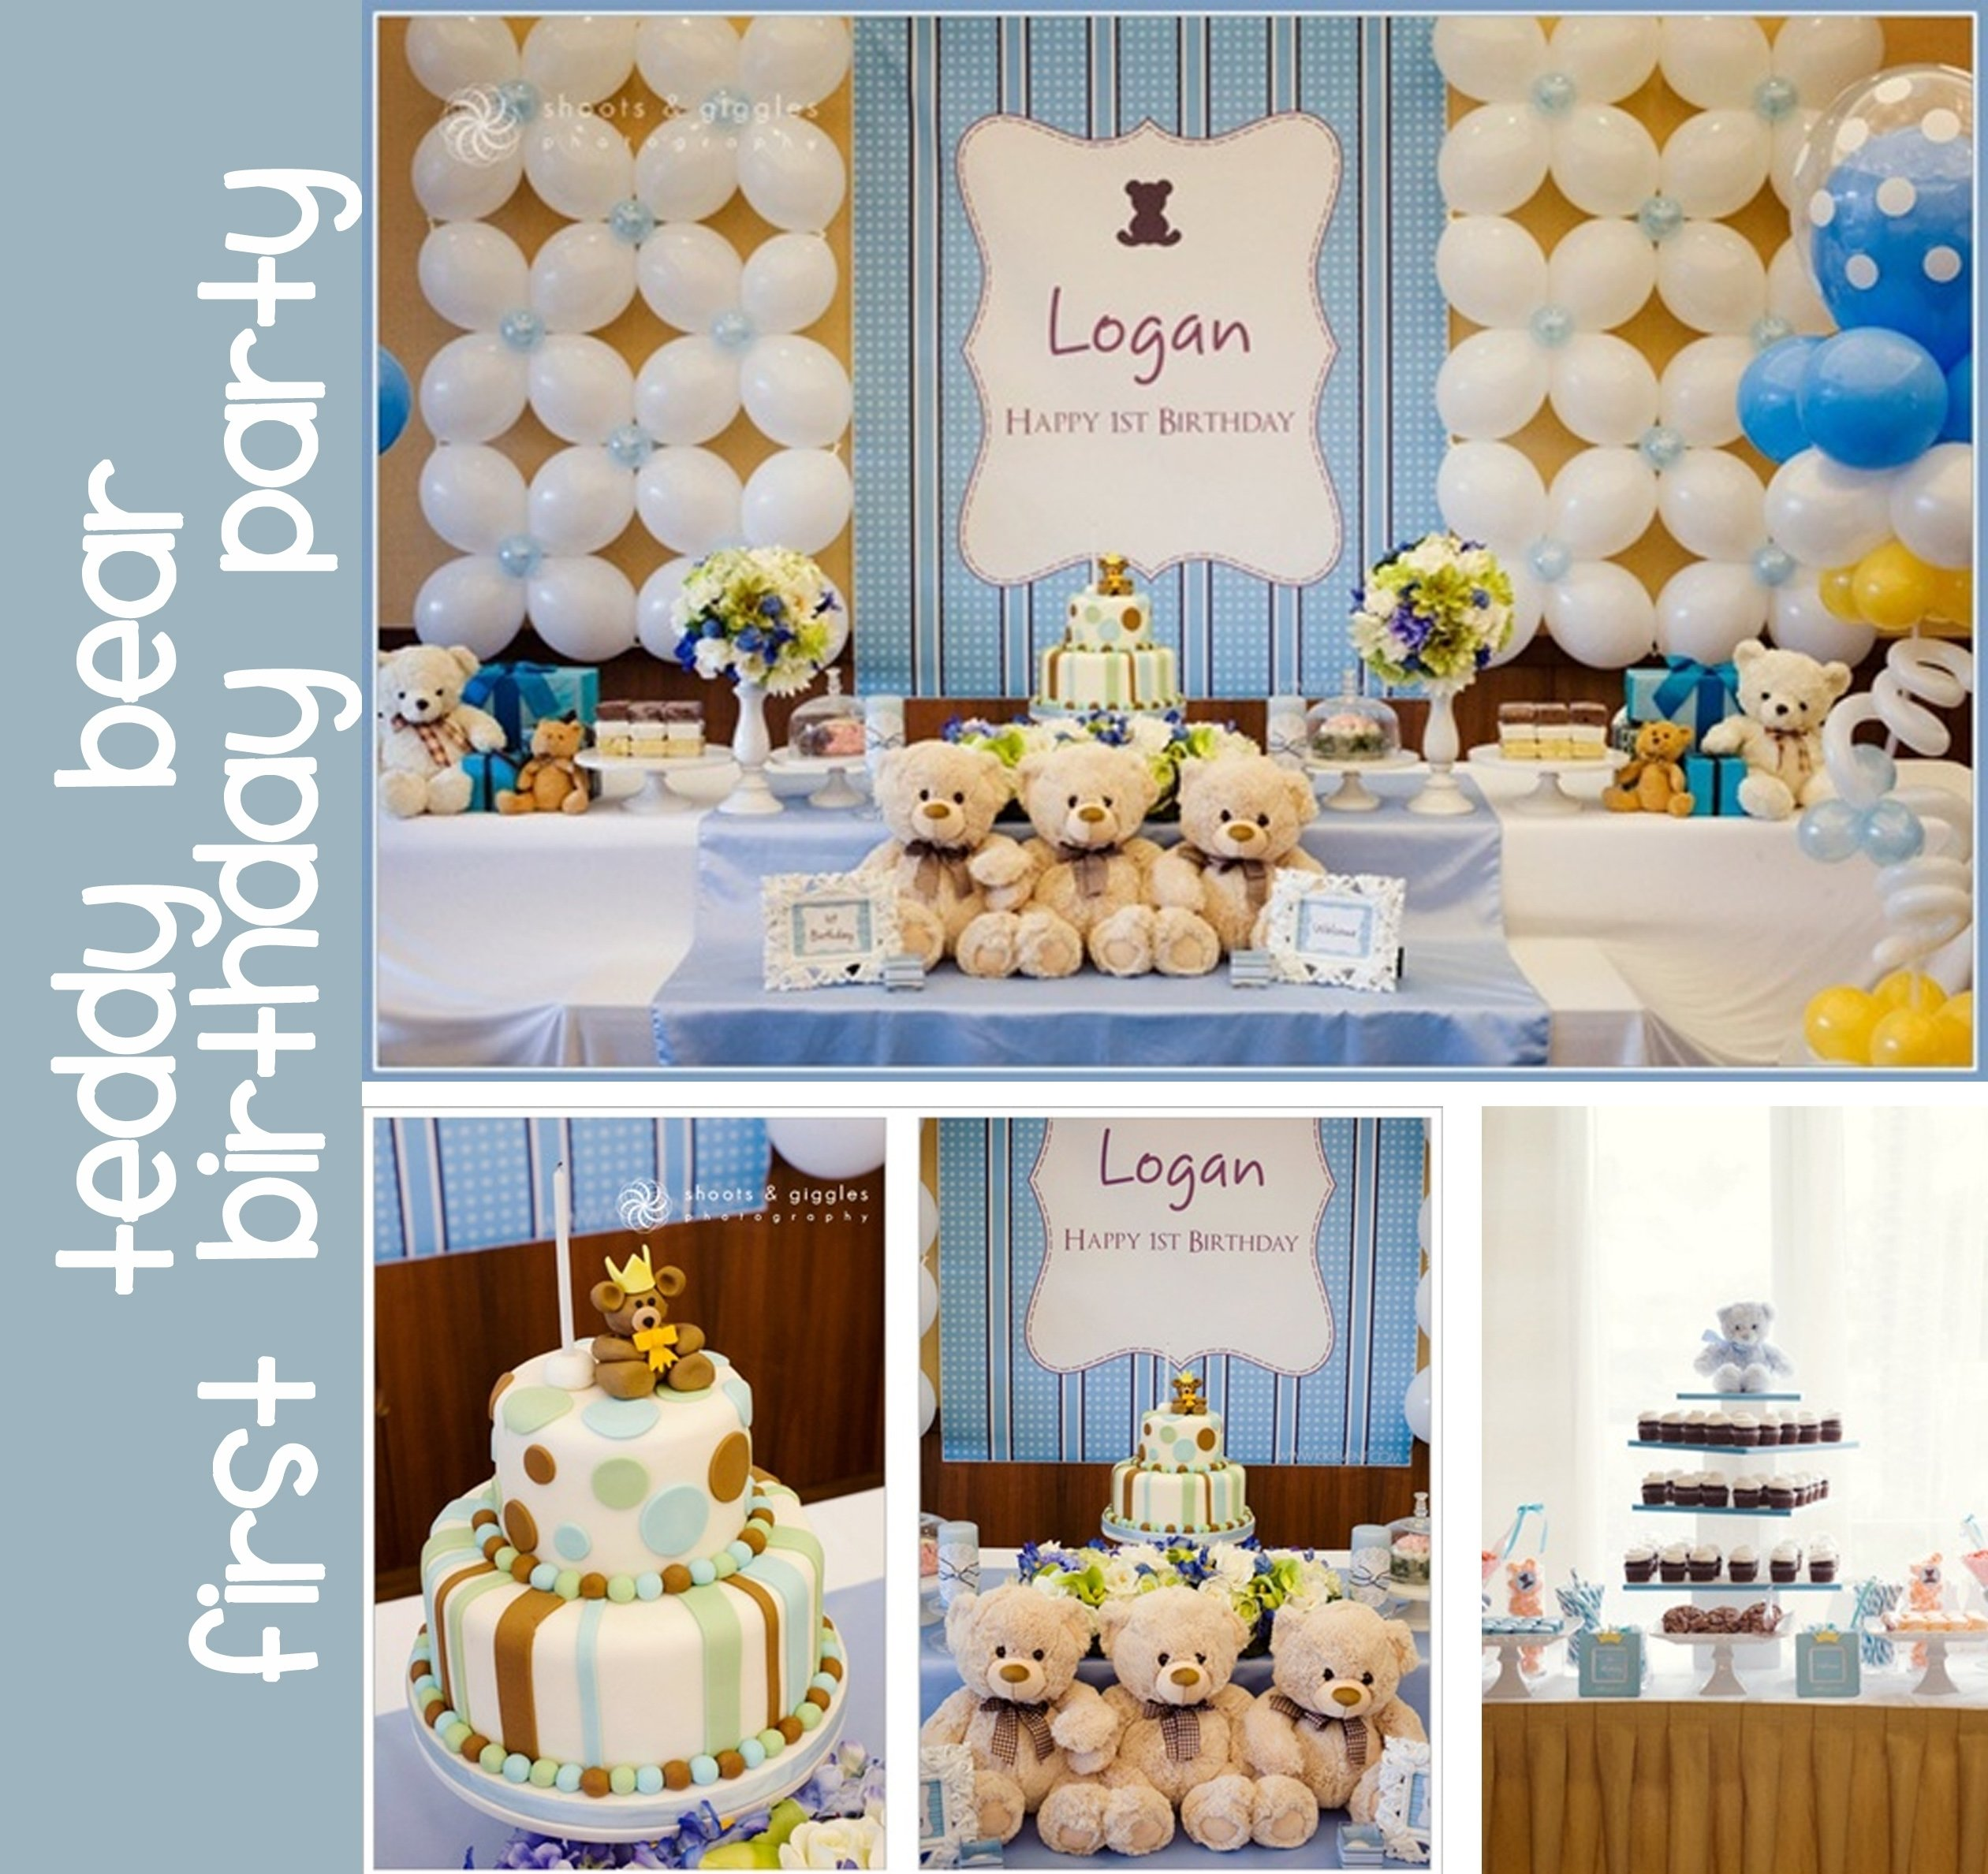 10 Fabulous Baby First Birthday Party Ideas baby first birthday ideas for boy first birthday teddy bear theme 8 2020